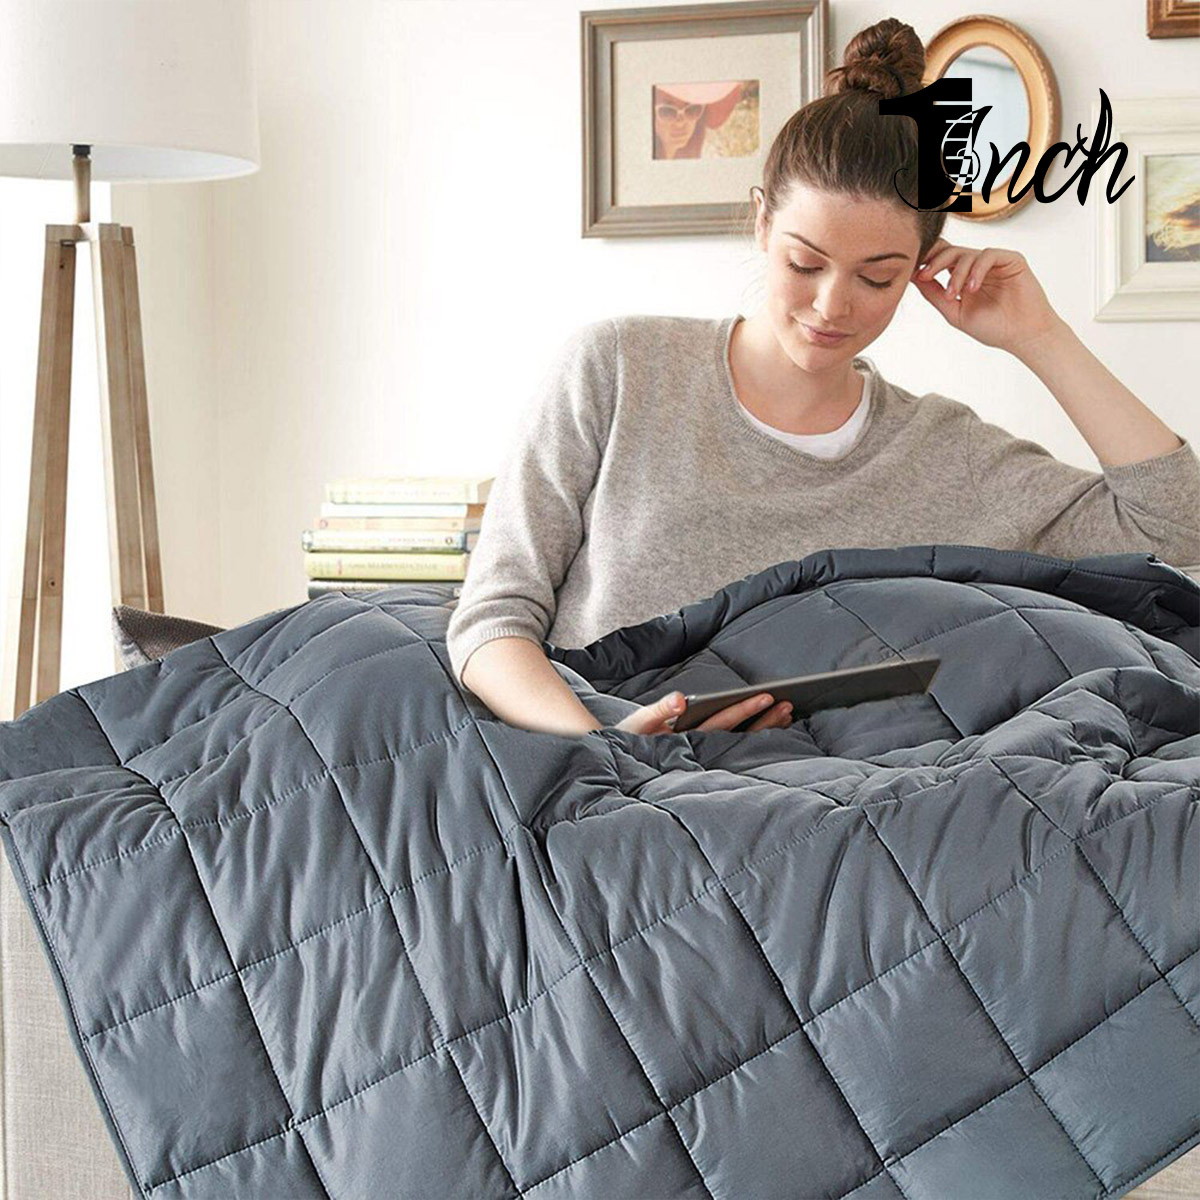 1inchome 15/20lbs Weighted Blanket Luxury Duvet Reduce Stress Blanket Help Deep Sleep Weighted Blanket Home Linens In Bed Room